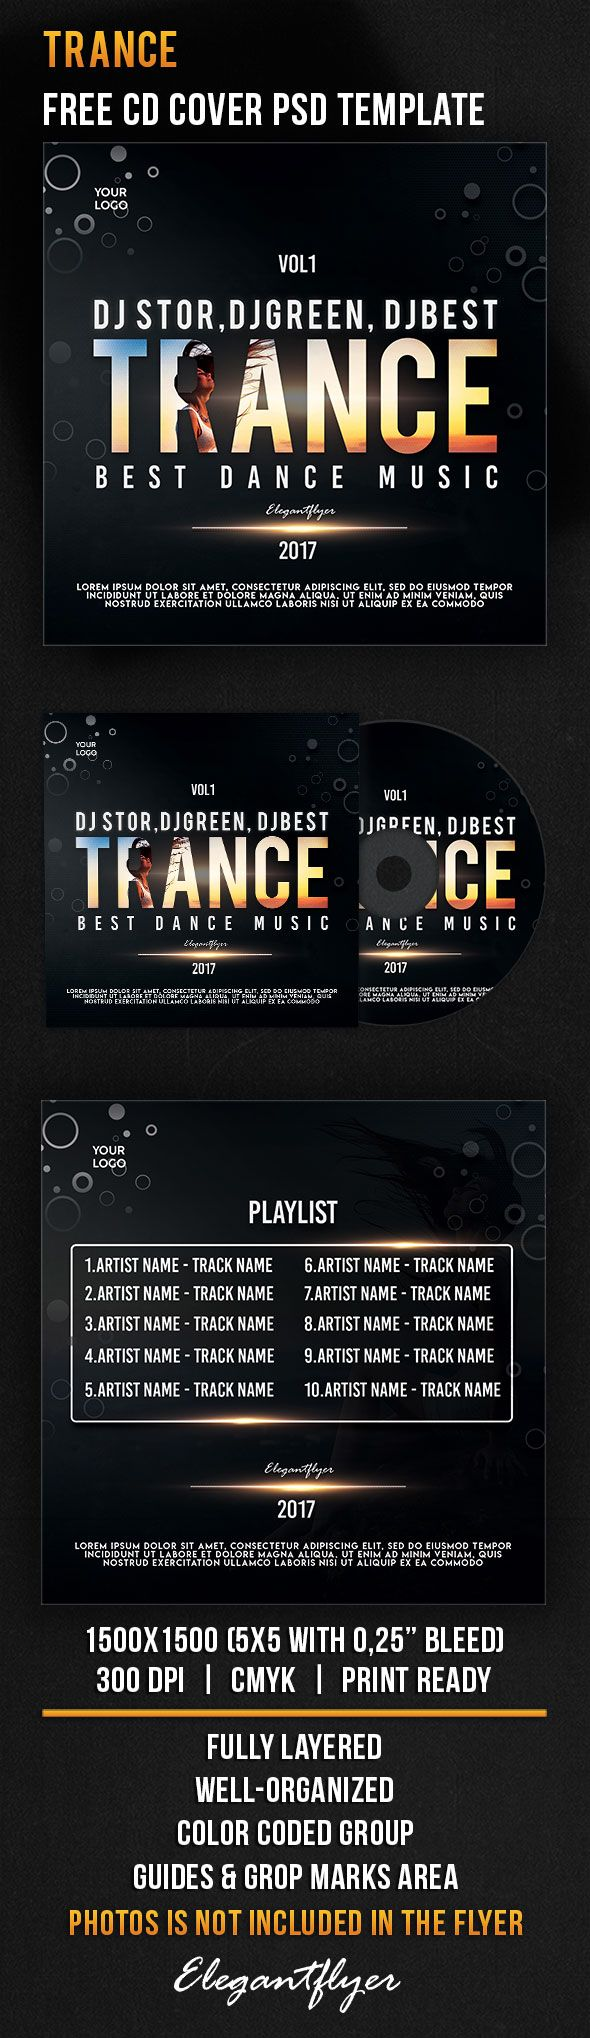 Trance – Free CD Cover PSD Template